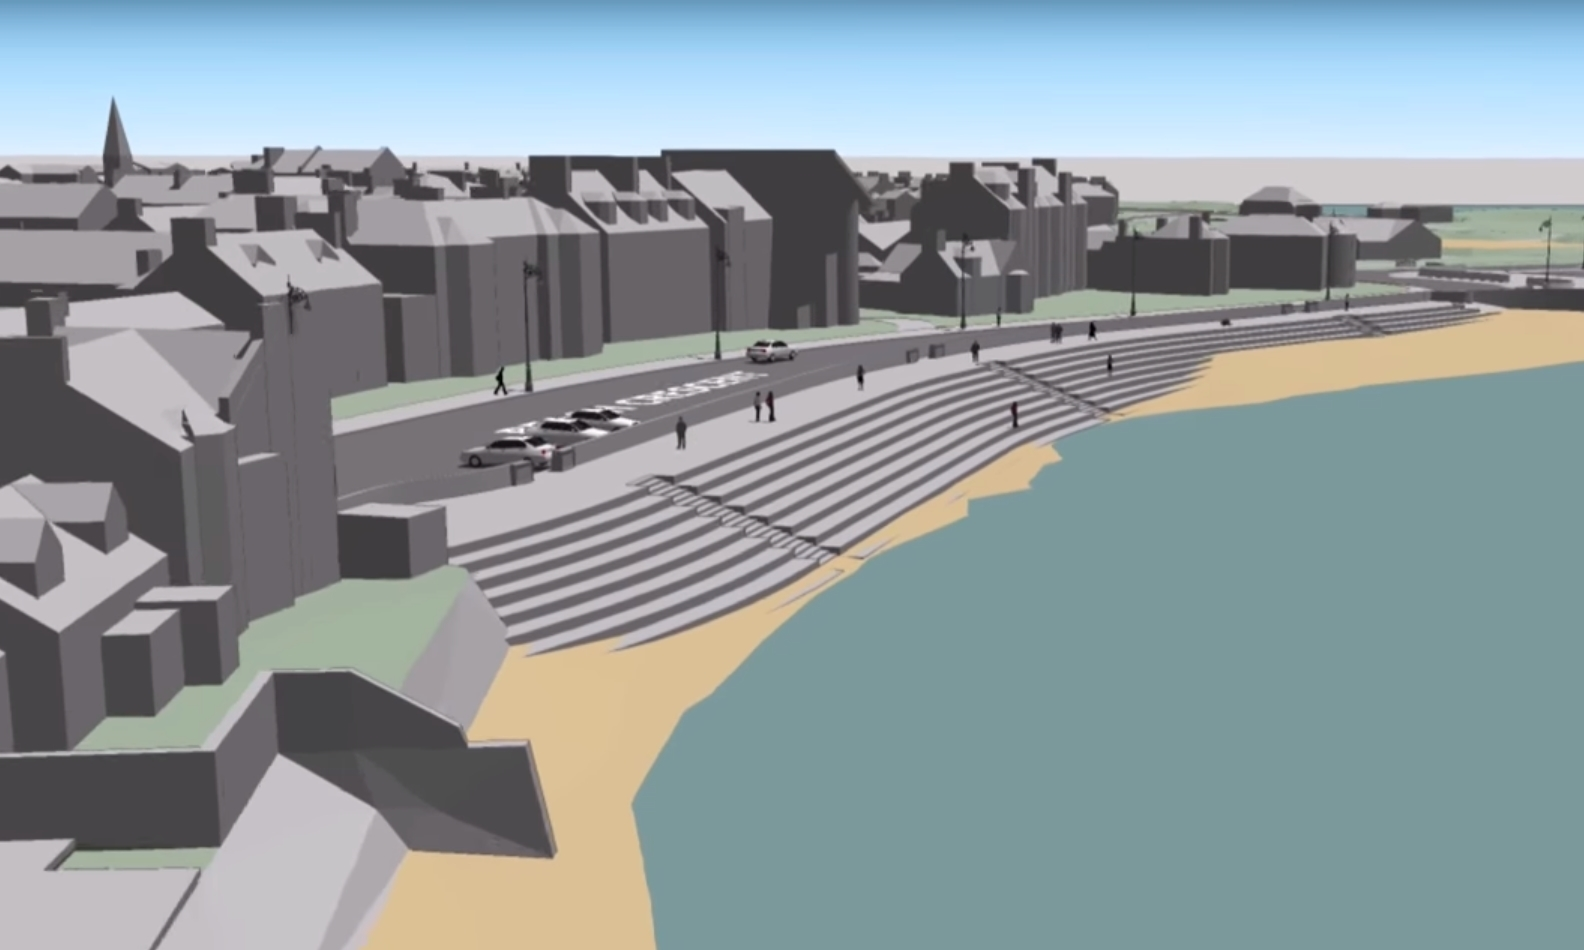 The video suggests major changes at Beach Crescent.